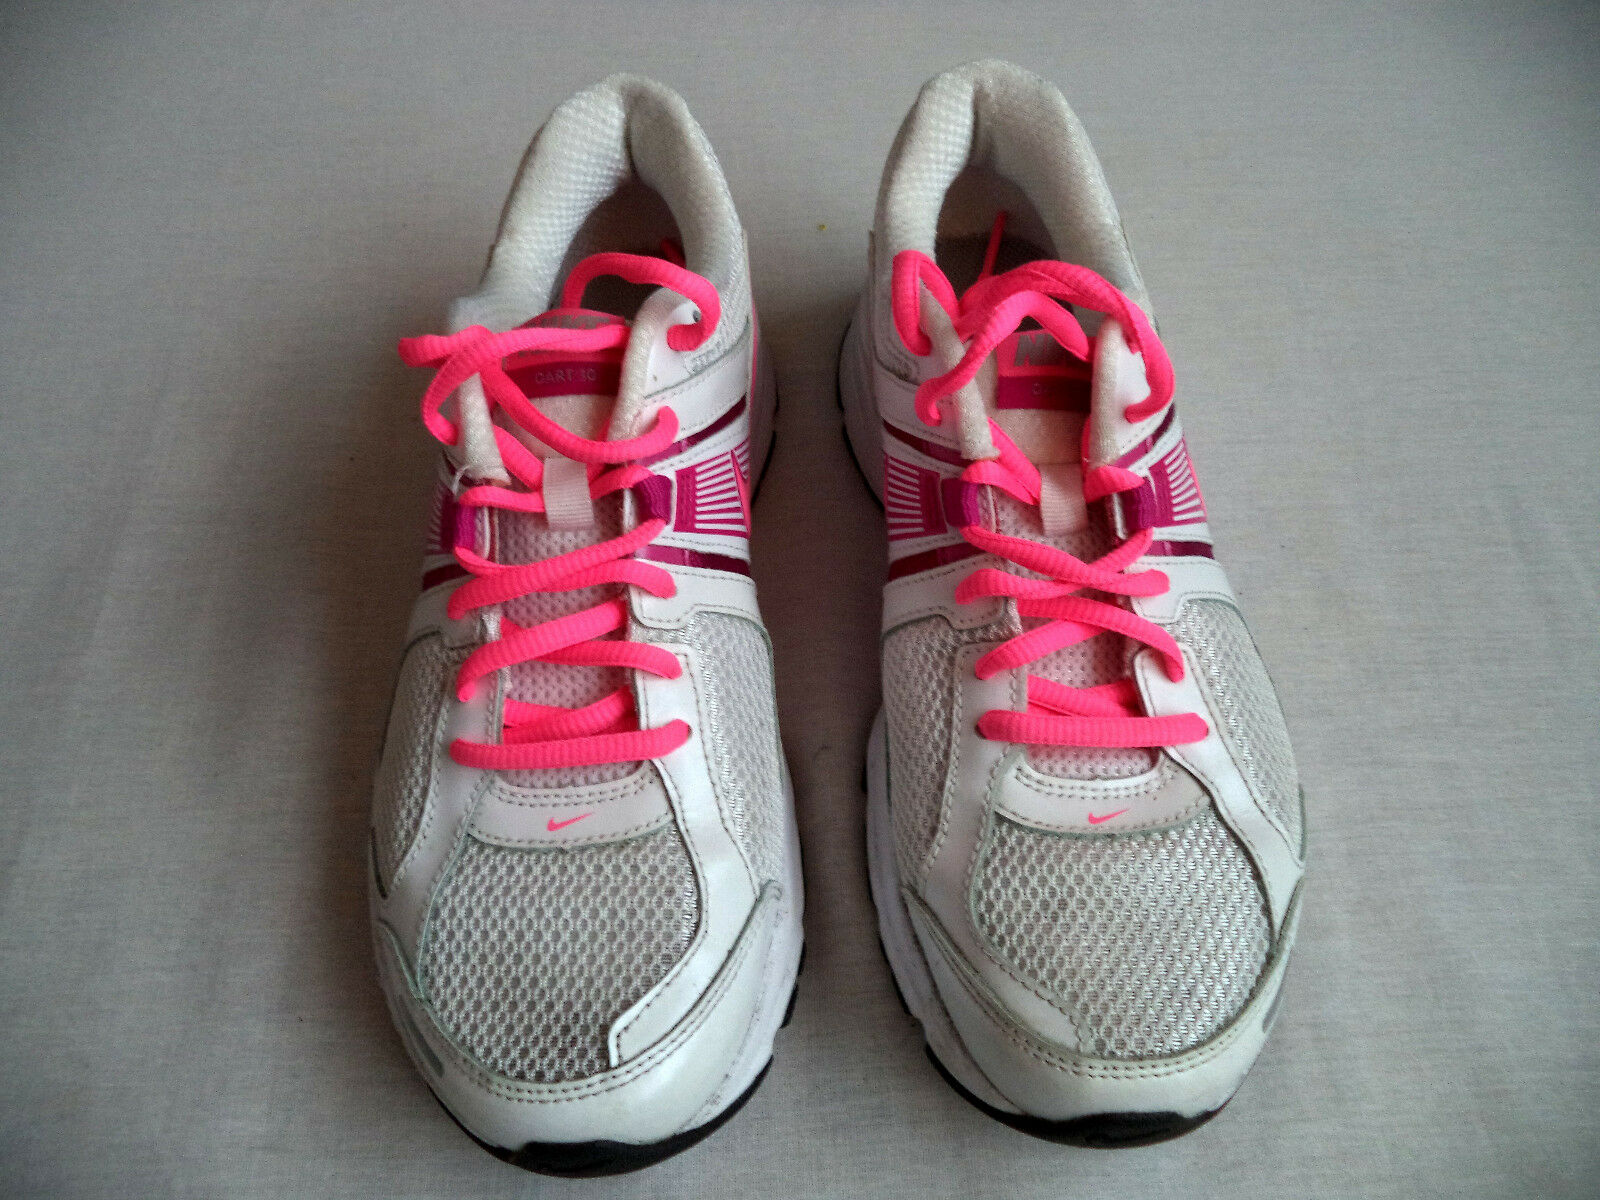 Womens NIKE Dart Dart Dart 10 running shoes sz 8 fitness gym athletic workout training 39560c